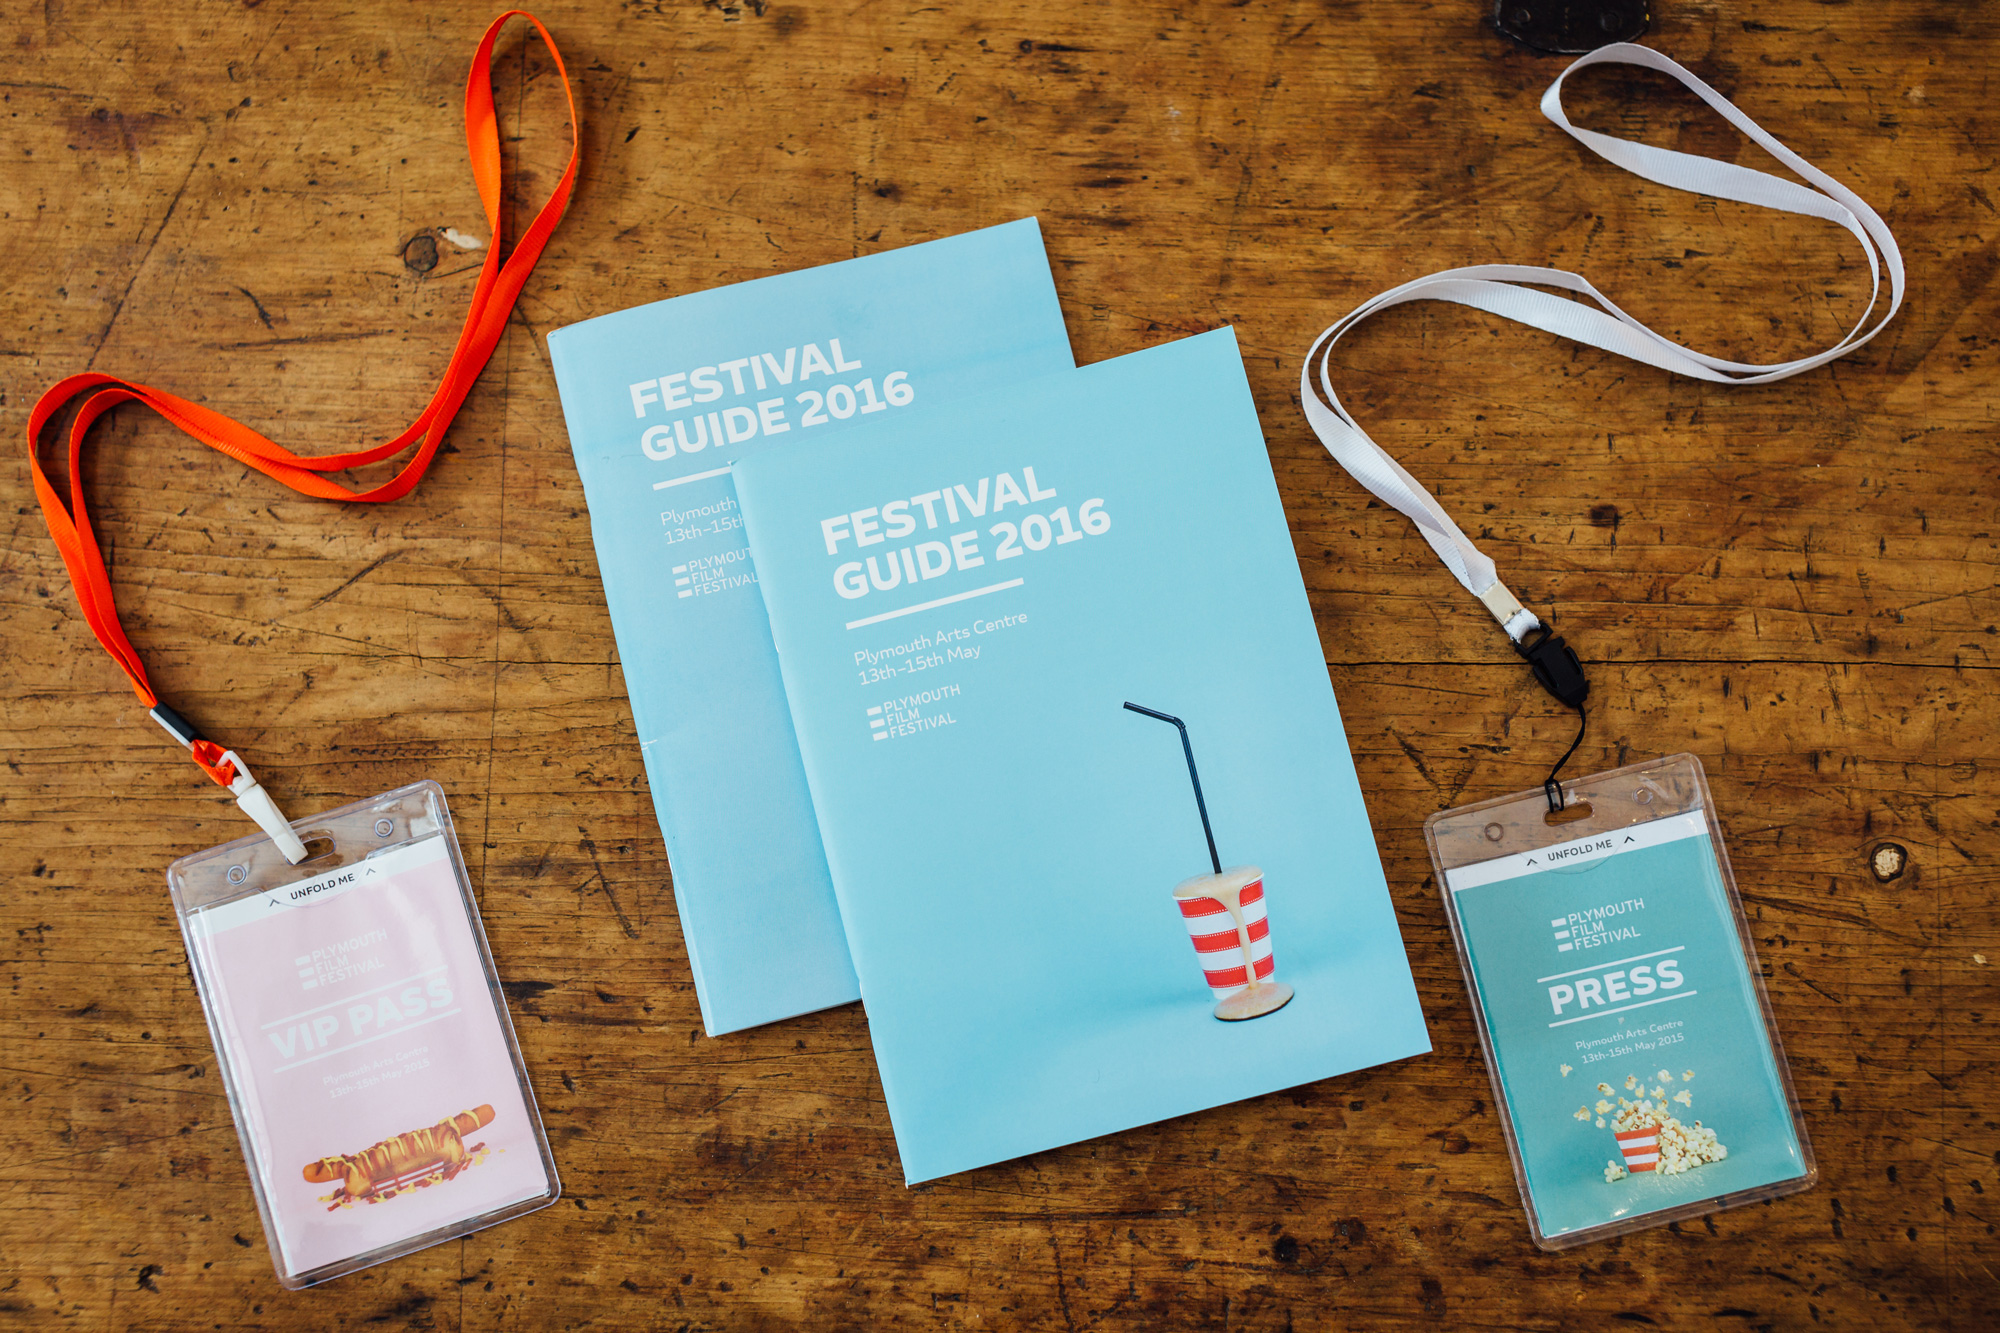 Plymouth Film Festival 2016 – Digital Marketing